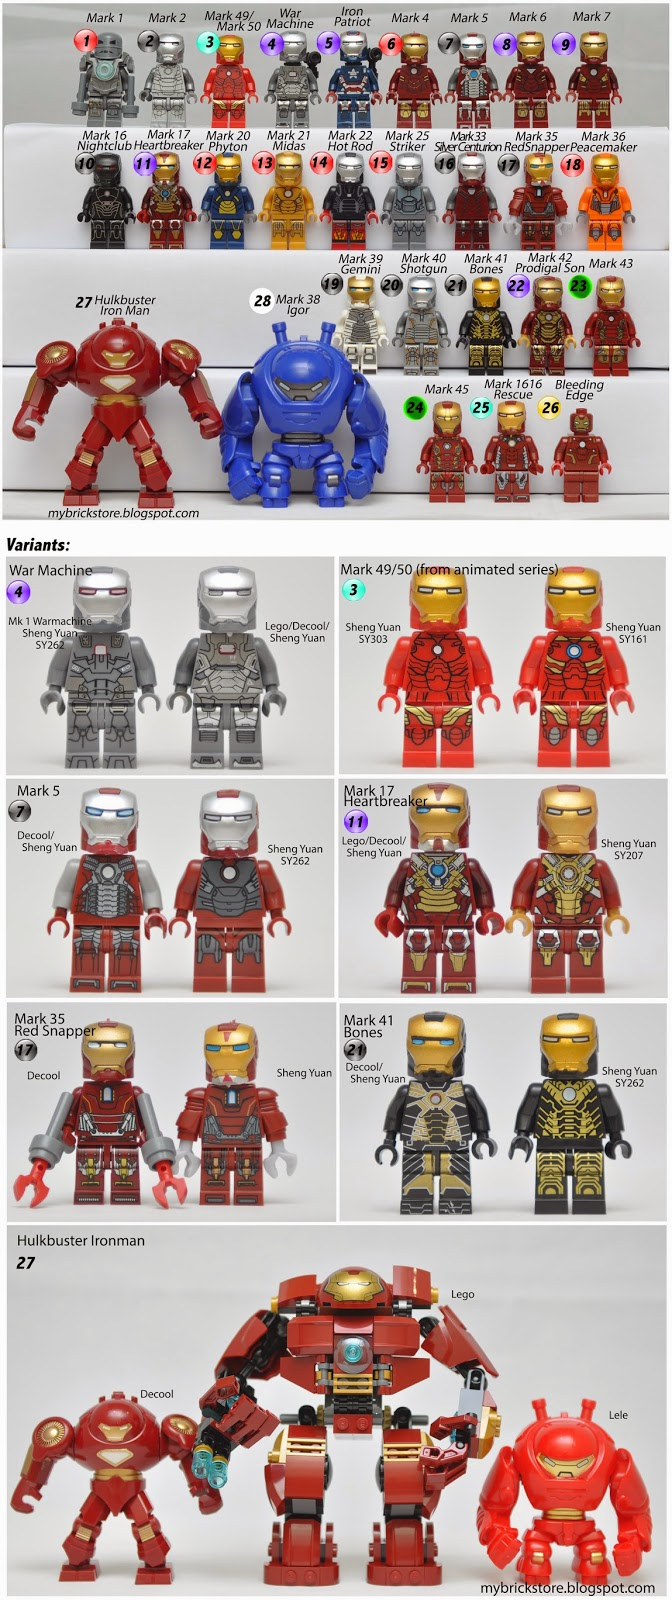 My Brick Store: List of Lego Iron Man (updated April 24th, 2015)